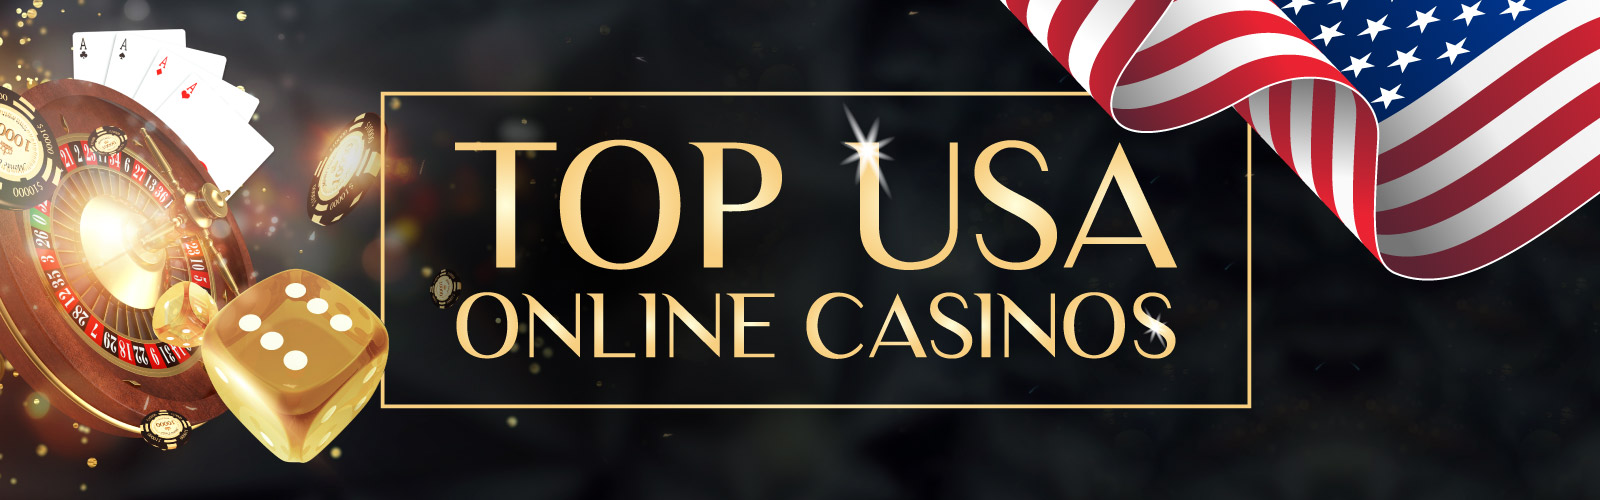 The Best Online Casinos For Usa Players